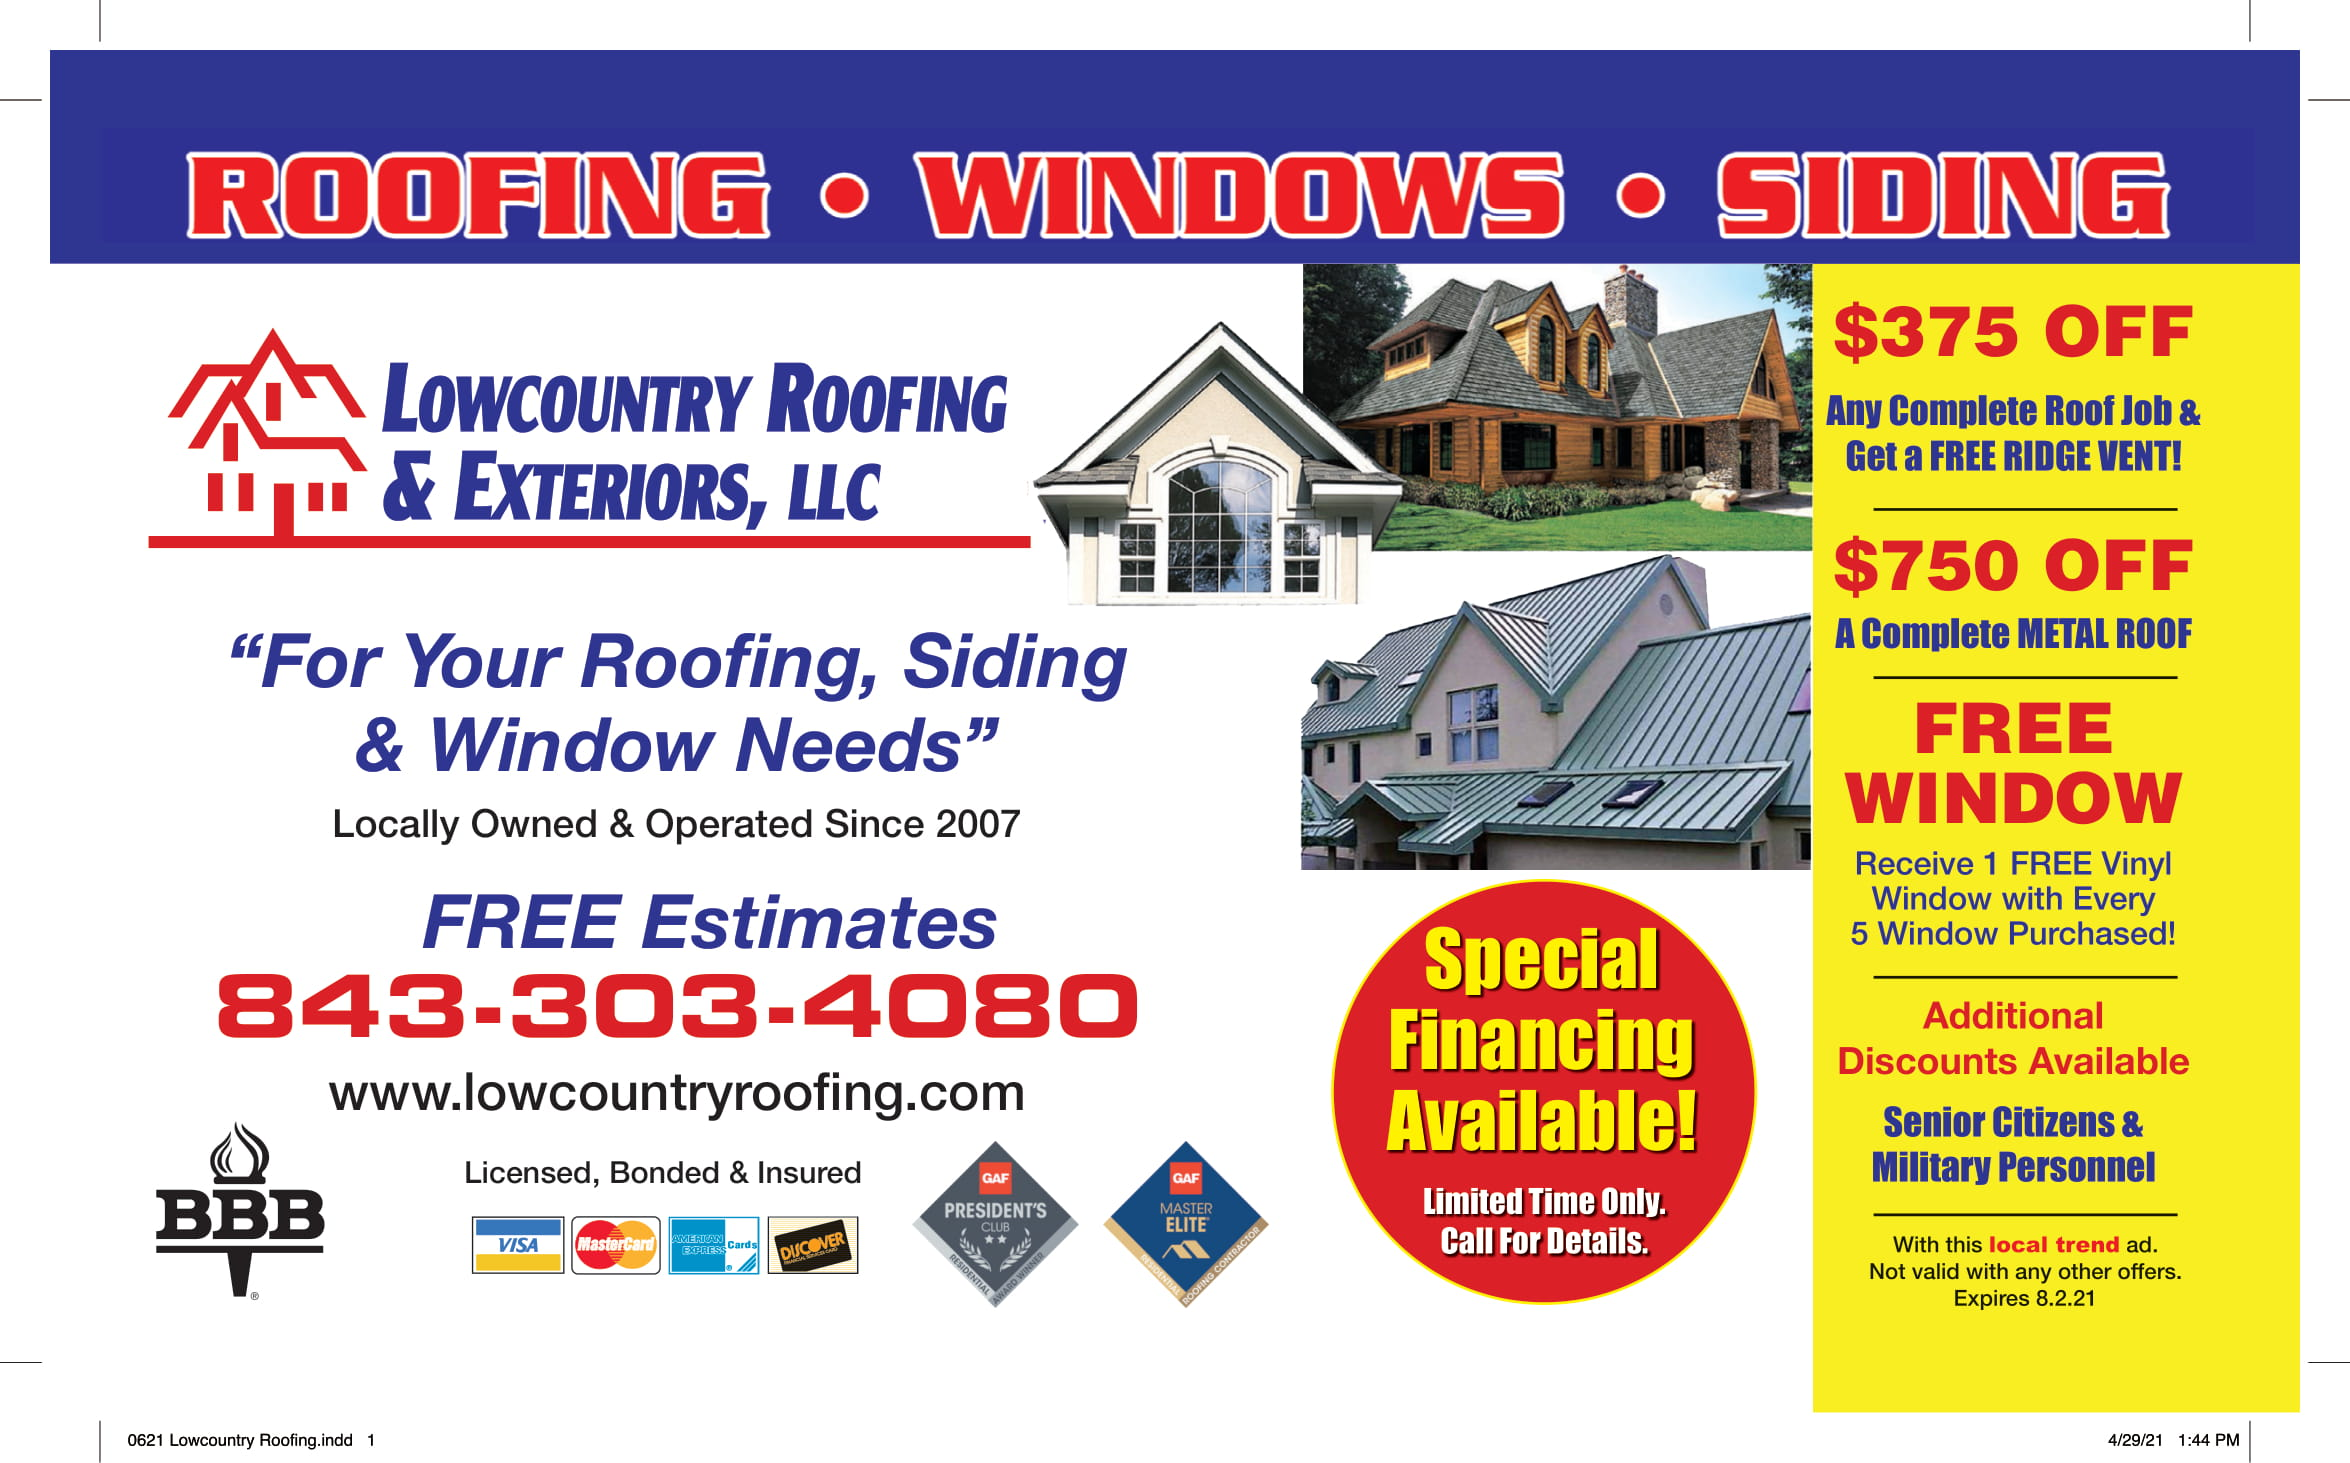 0621 Lowcountry Roofing 1